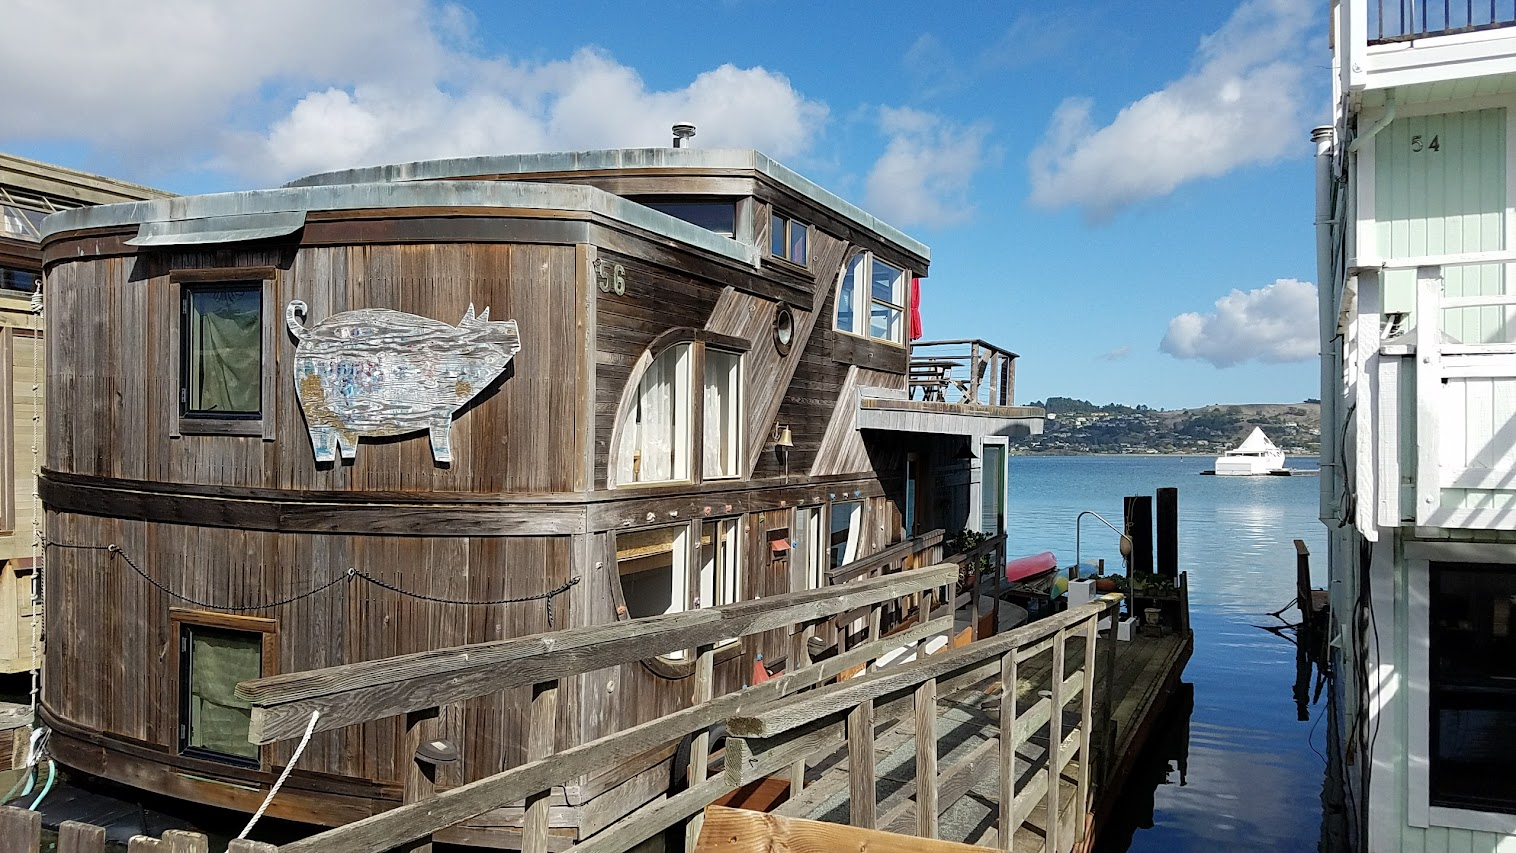 Floating Homes of Sausalito. There are multiple piers where neighborhoods of floating homes are docked in Sausalito, just 30 minutes north of San Francisco, and the one I visited were the docks at Waldo Point Harbor.